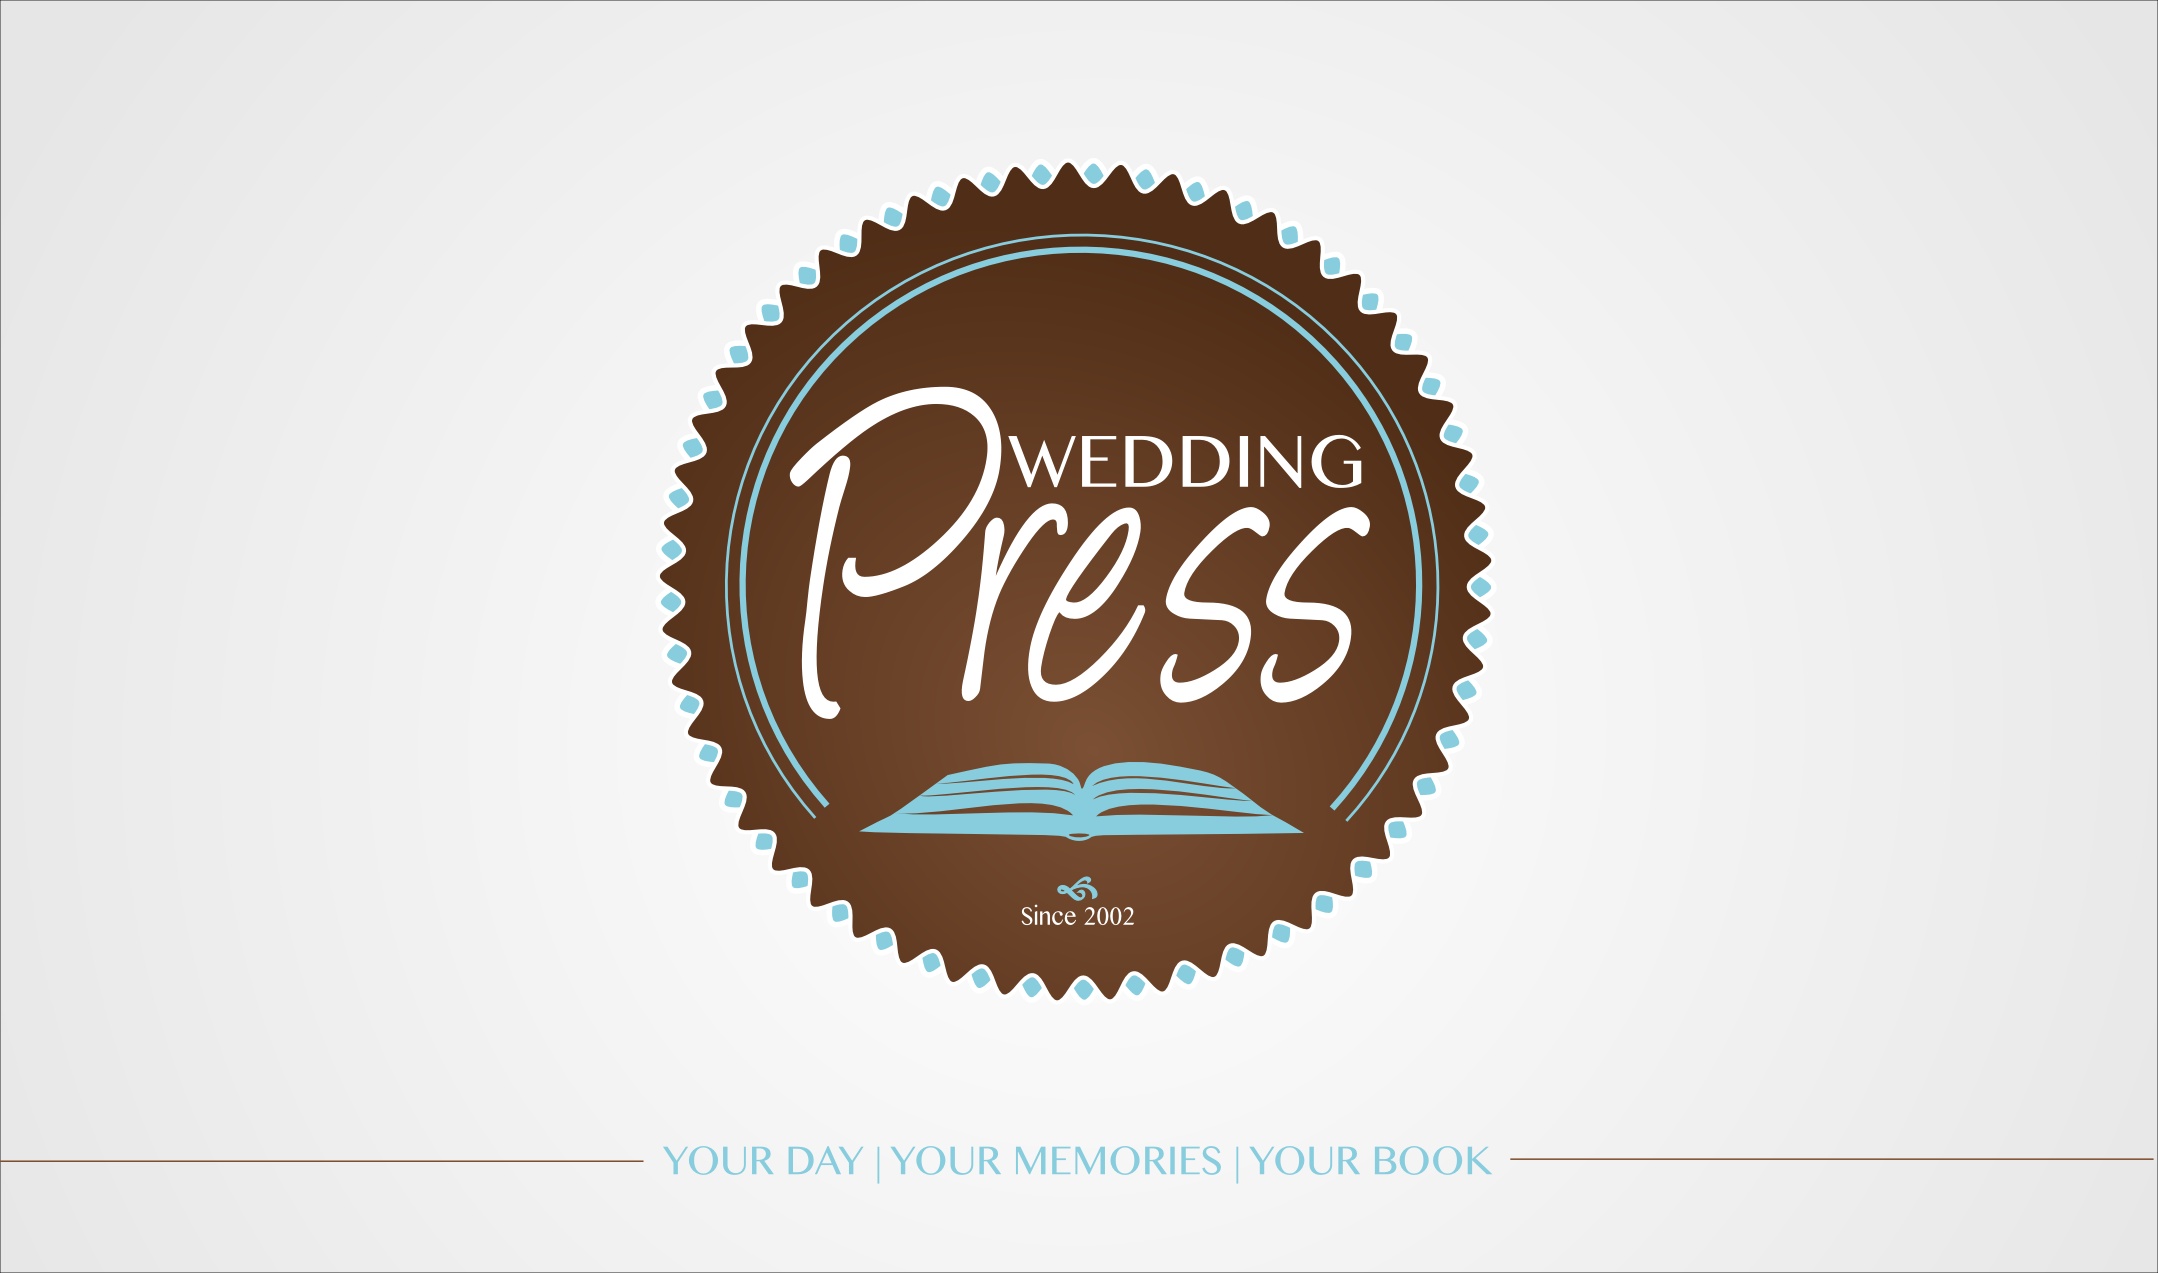 Logo Design by Andrew Bertram - Entry No. 76 in the Logo Design Contest Wedding Writes Logo Design.